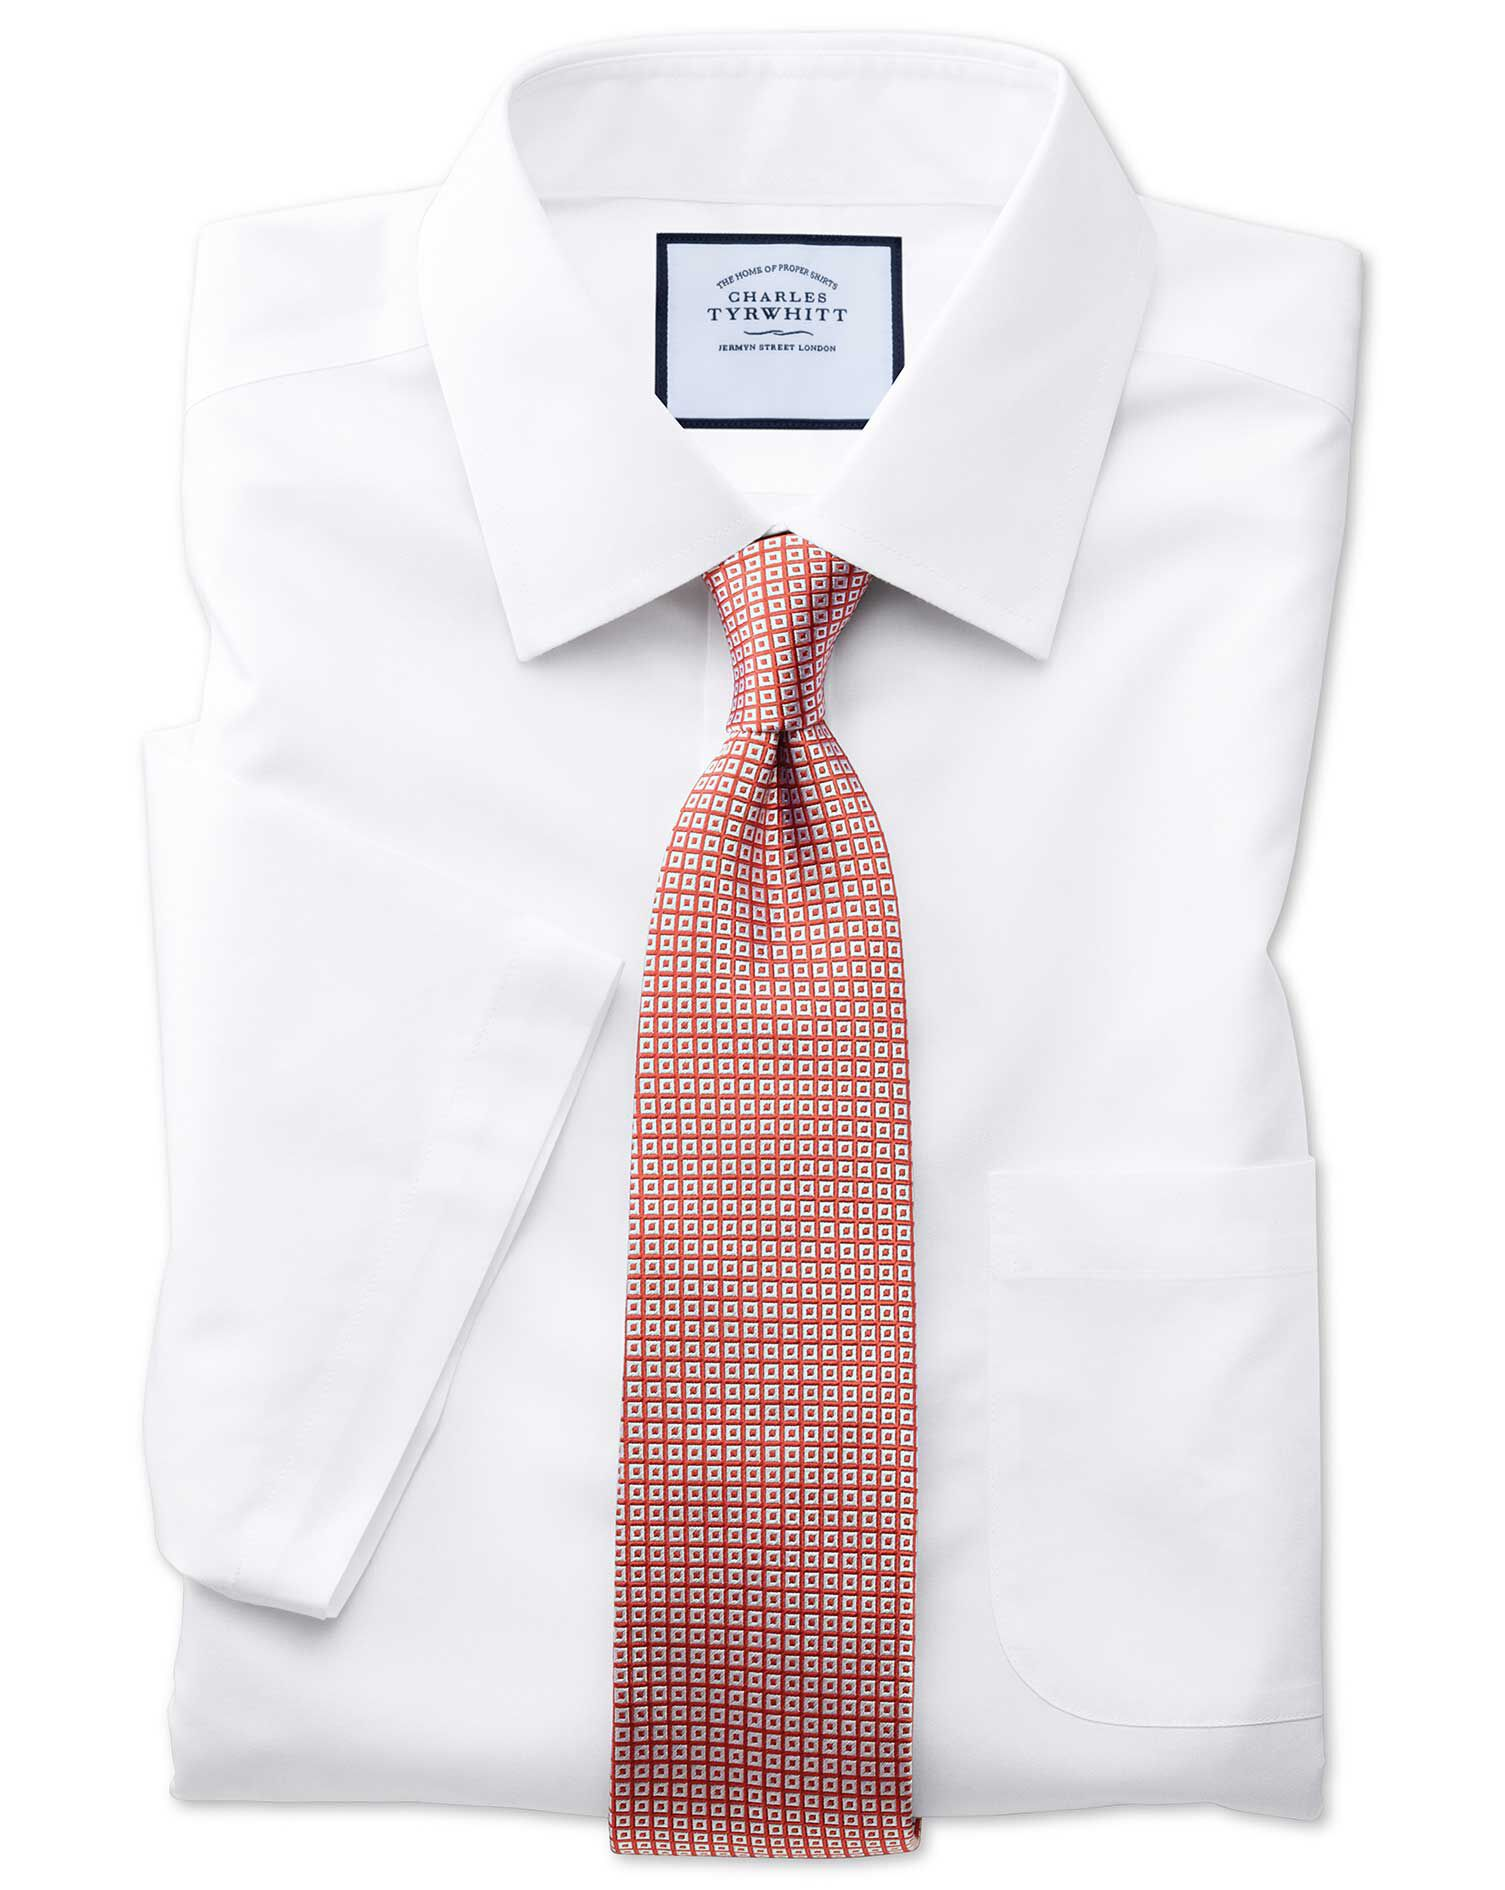 Classic Fit Non-Iron Poplin Short Sleeve White Cotton Formal Shirt Size 17.5/Short by Charles Tyrwhi